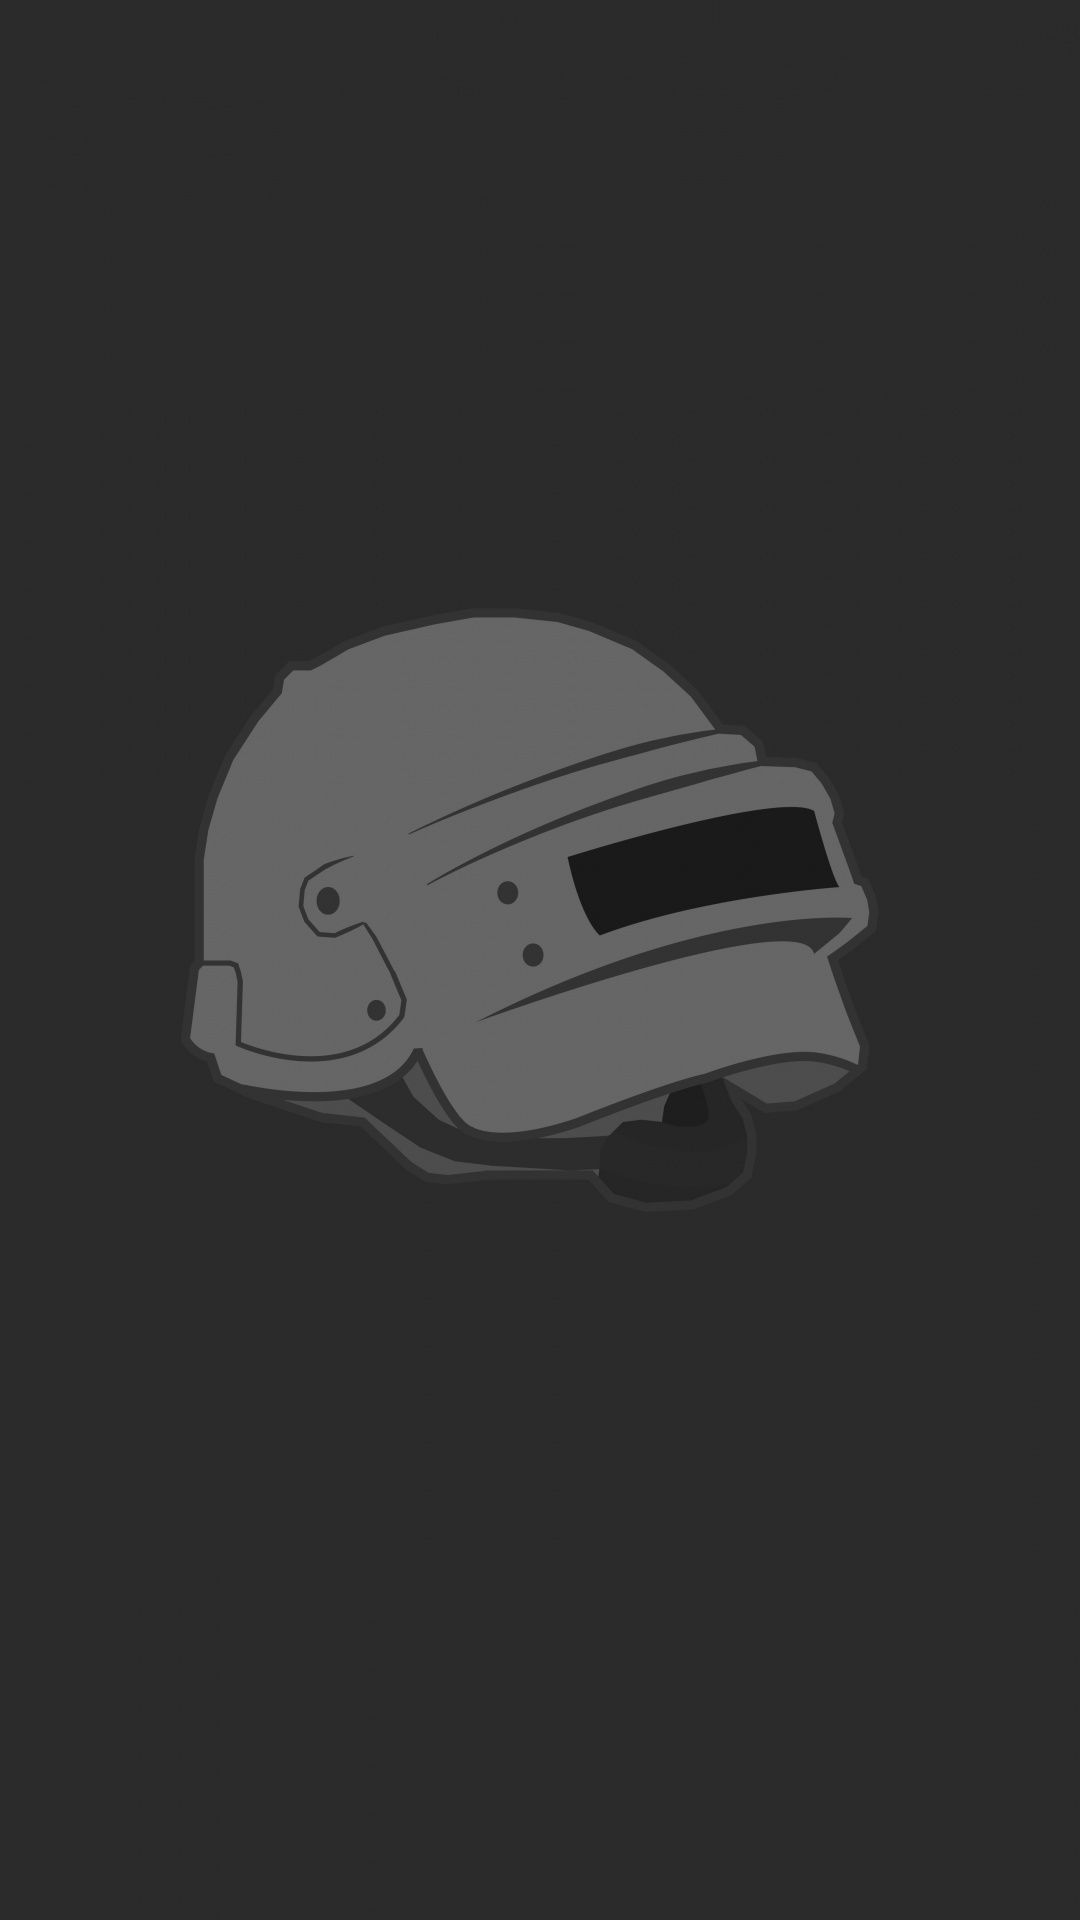 Pubg Helmet Logo Minimal Wallpaper Minimal Wallpaper Game Wallpaper Iphone Hd Phone Wallpapers